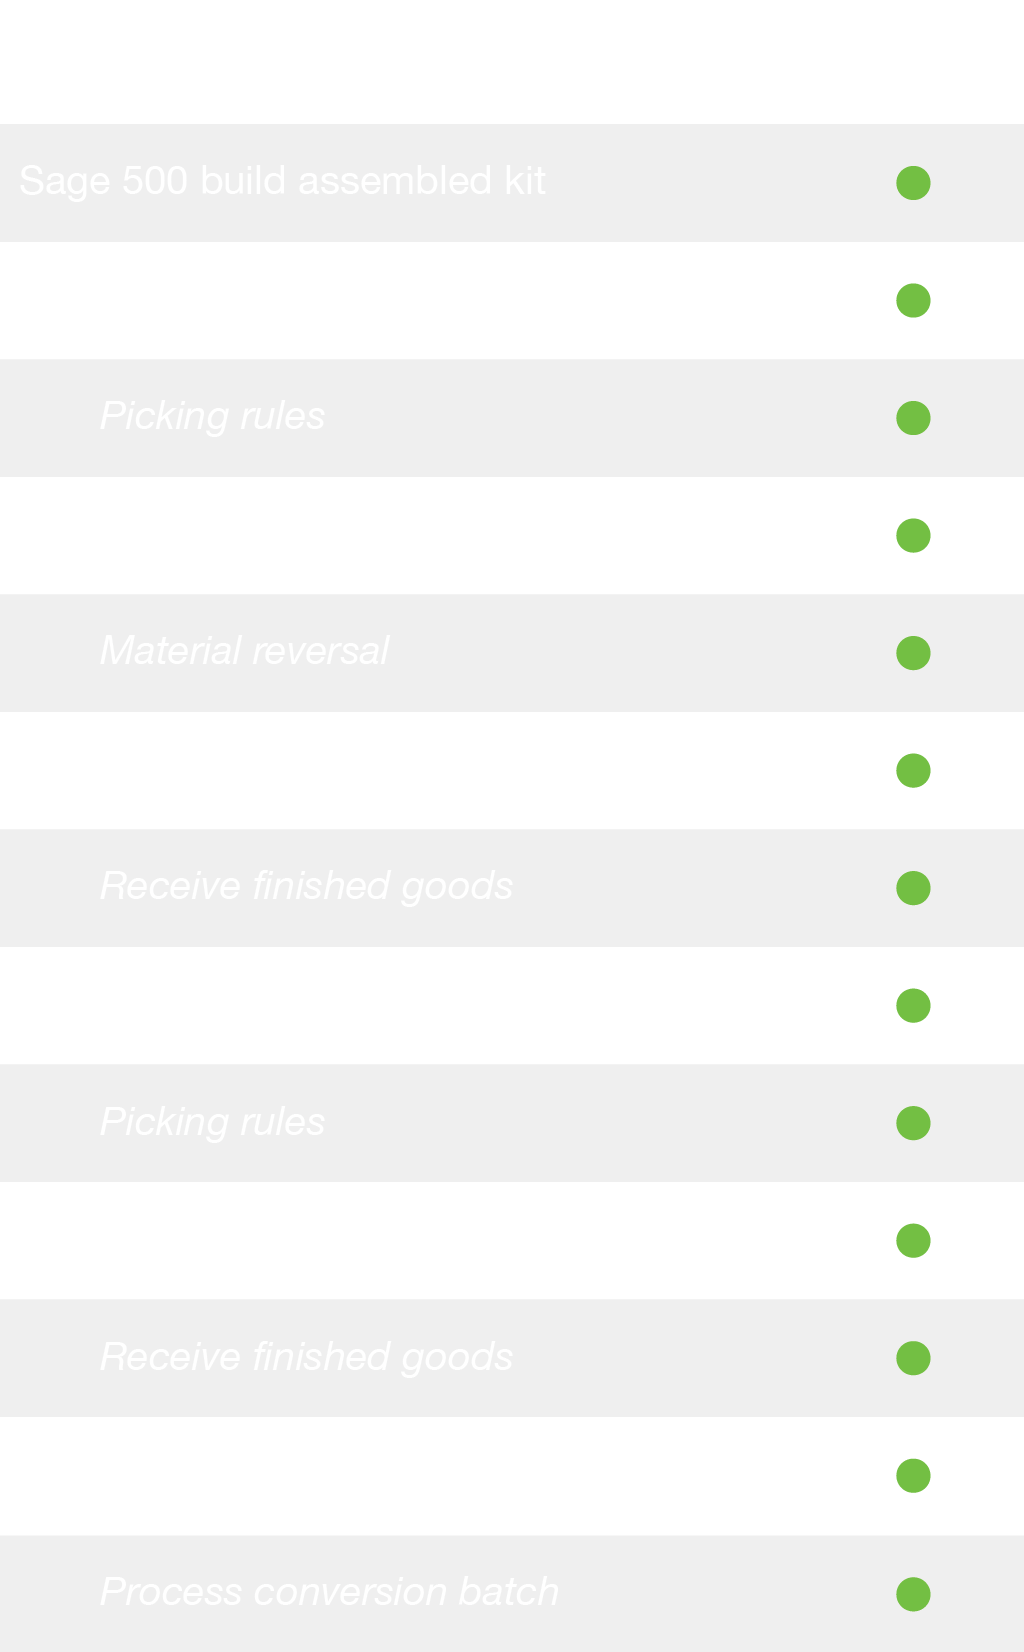 Manufacturingfeatures@2x.png